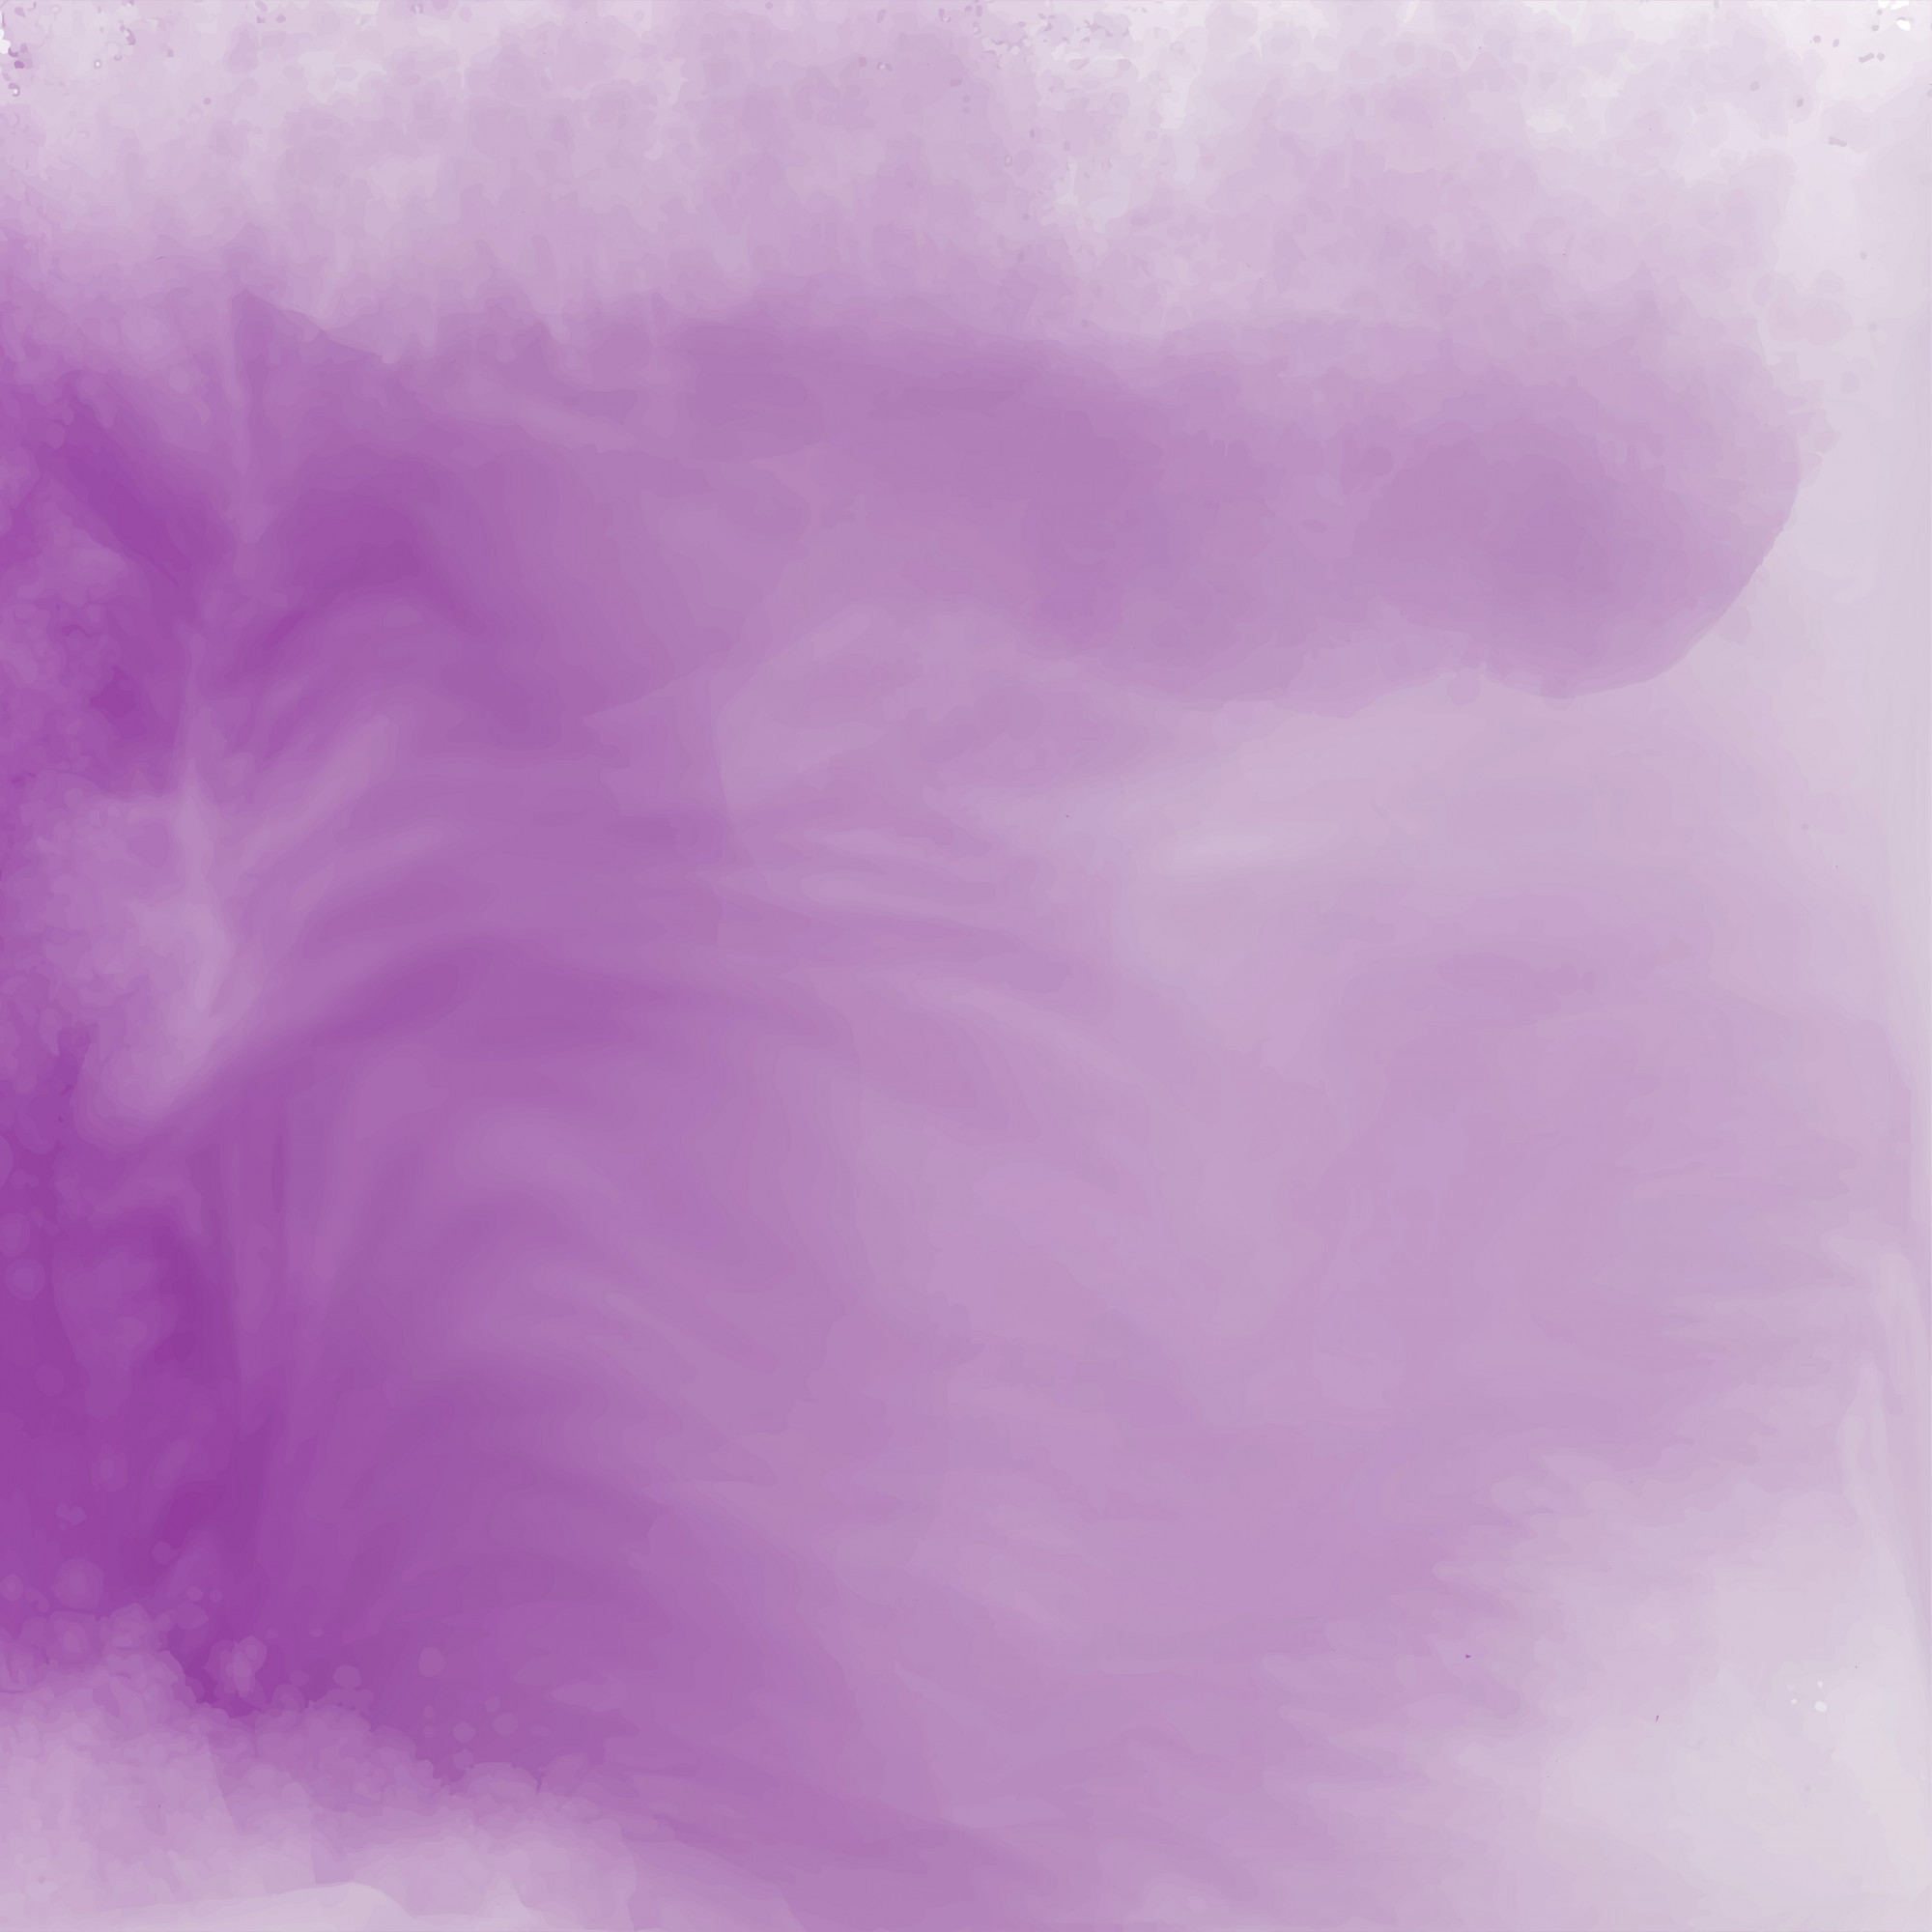 Elegant soft purple watercolor texture background